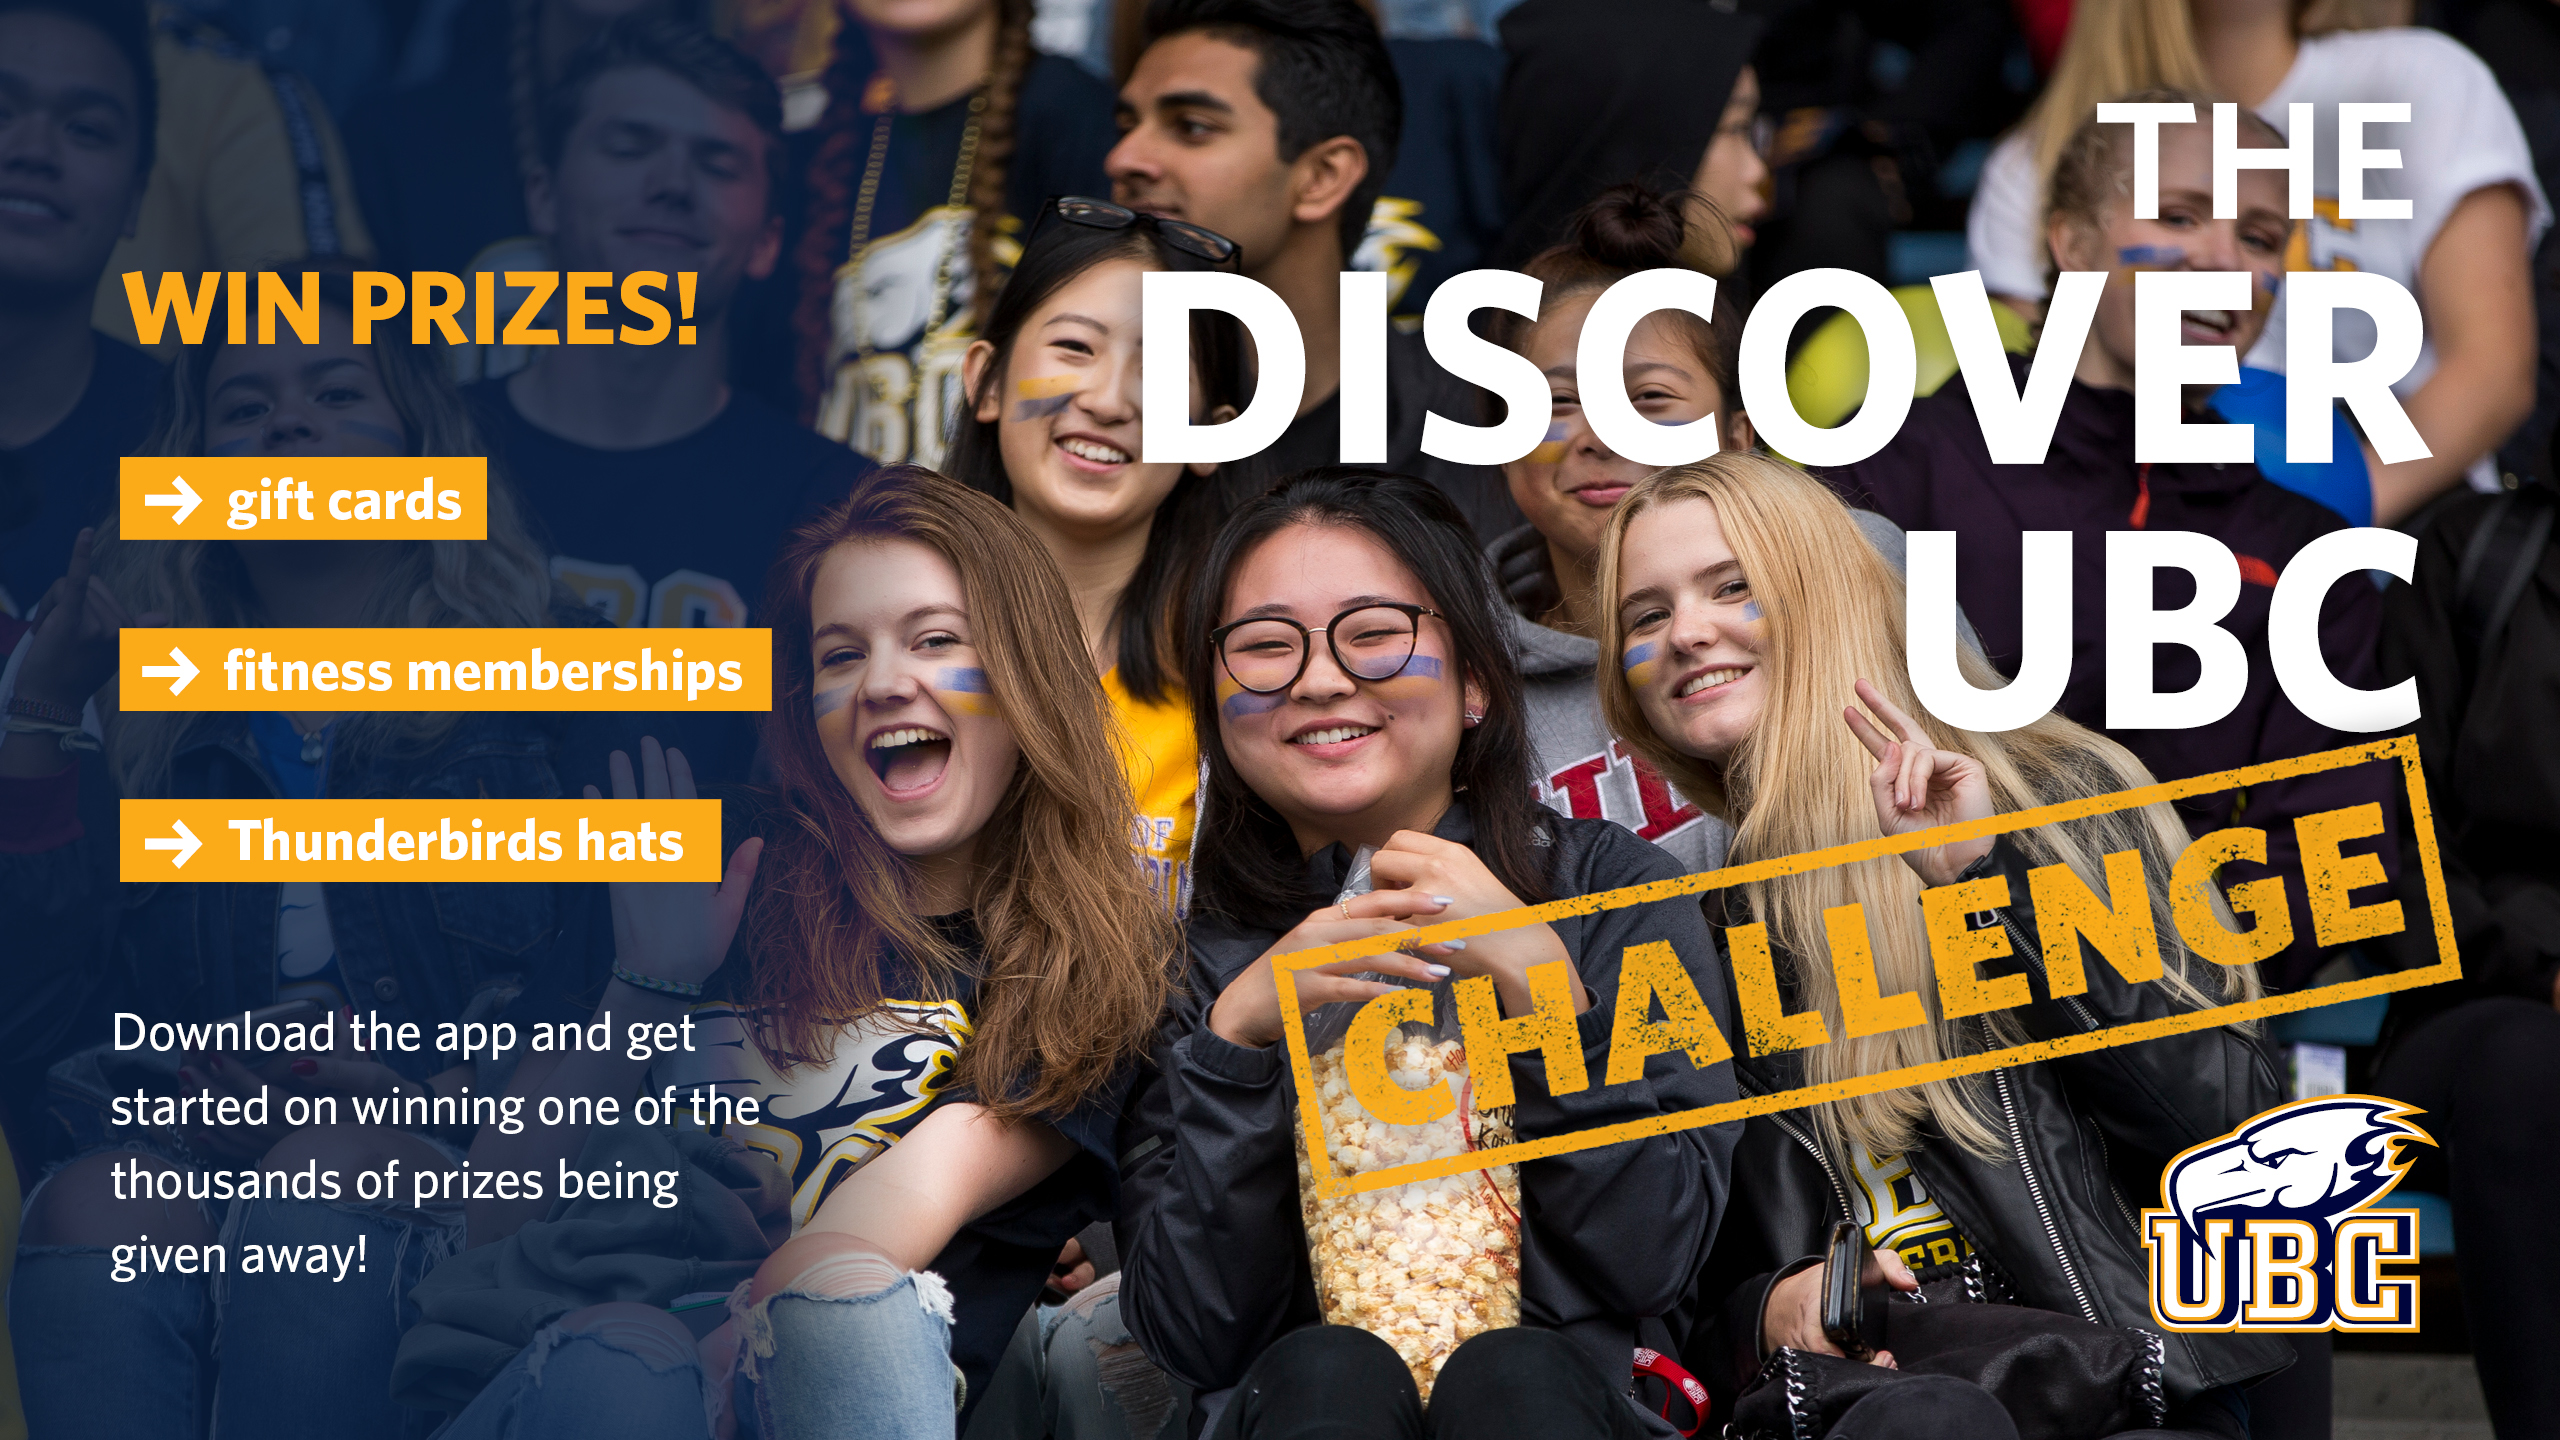 Discover UBC challenge information